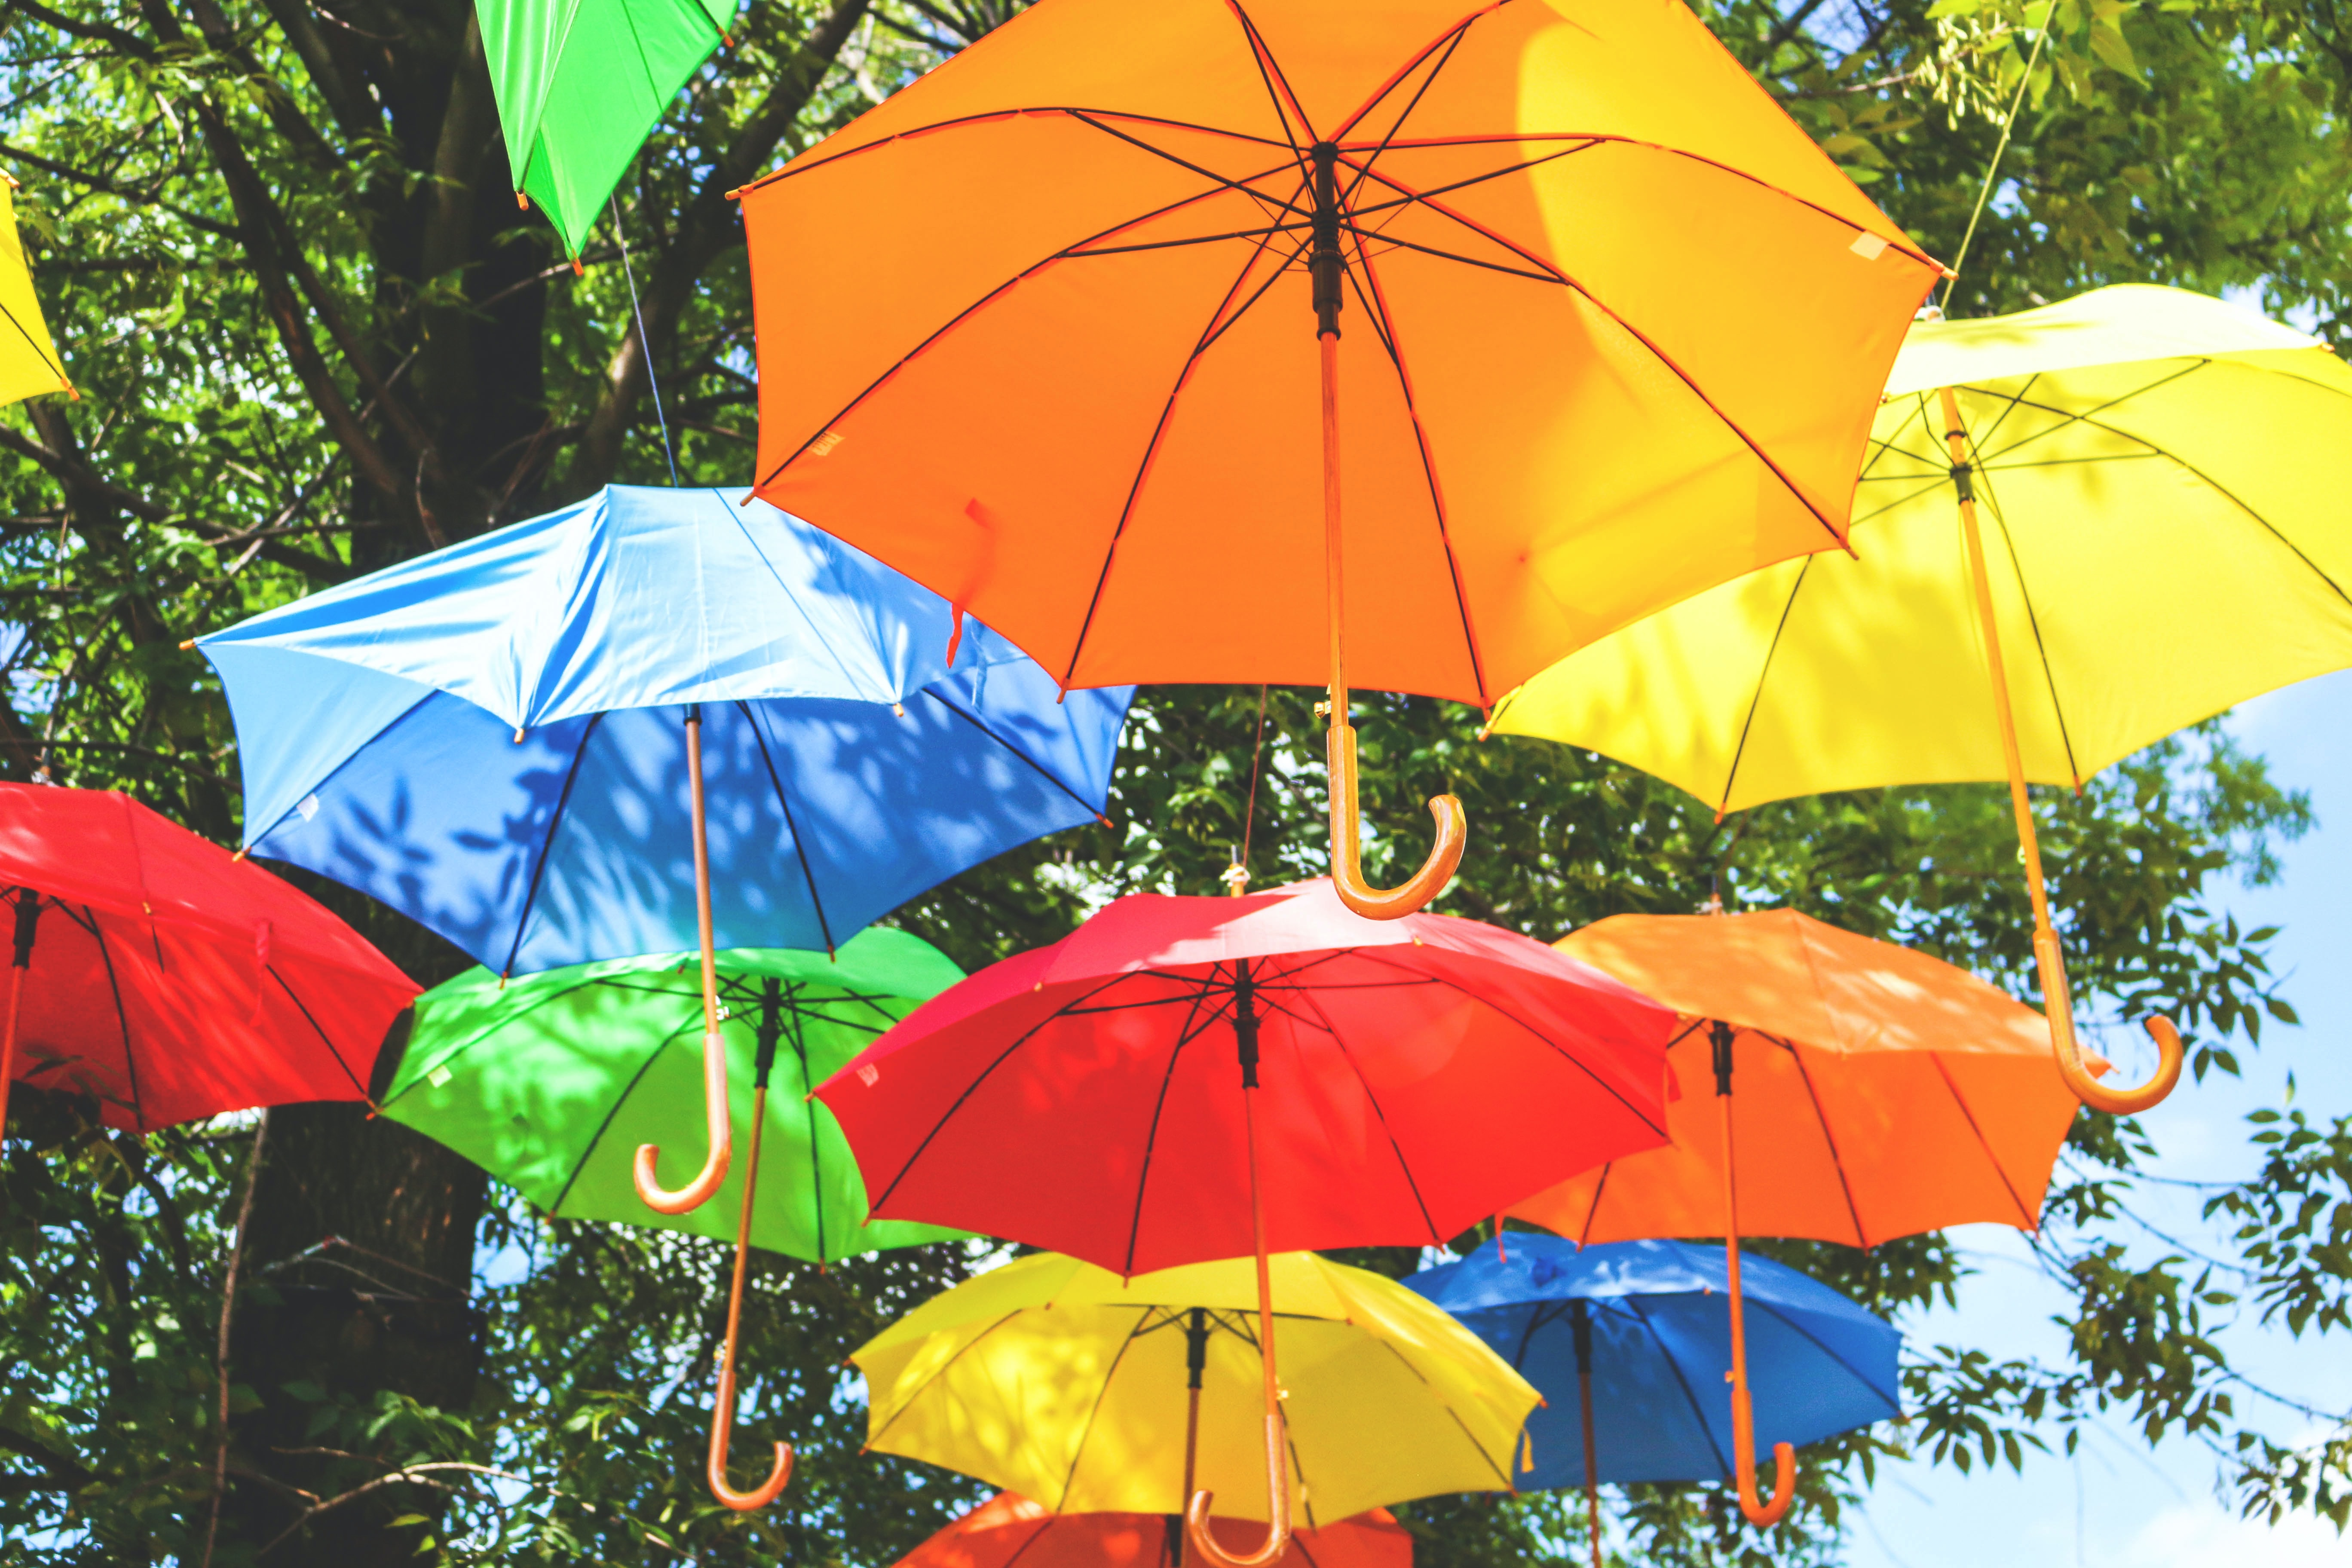 assorted-color hanged umbrellas near tree